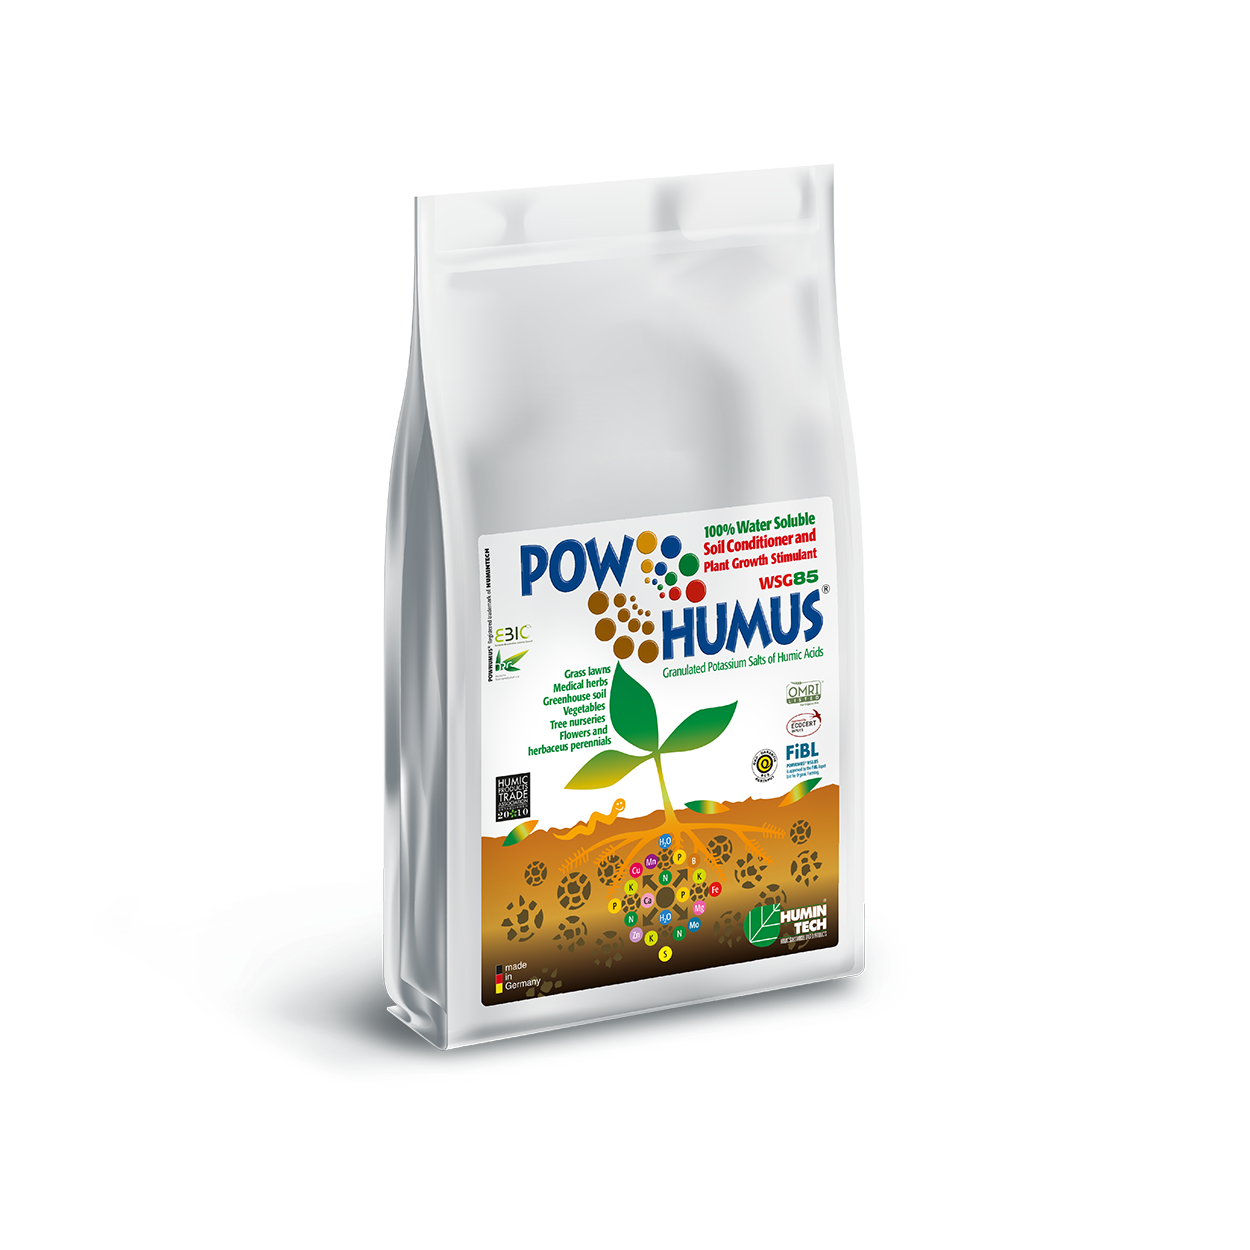 POWHUMUS WSG 85 100% Organic Soil Conditioner bag